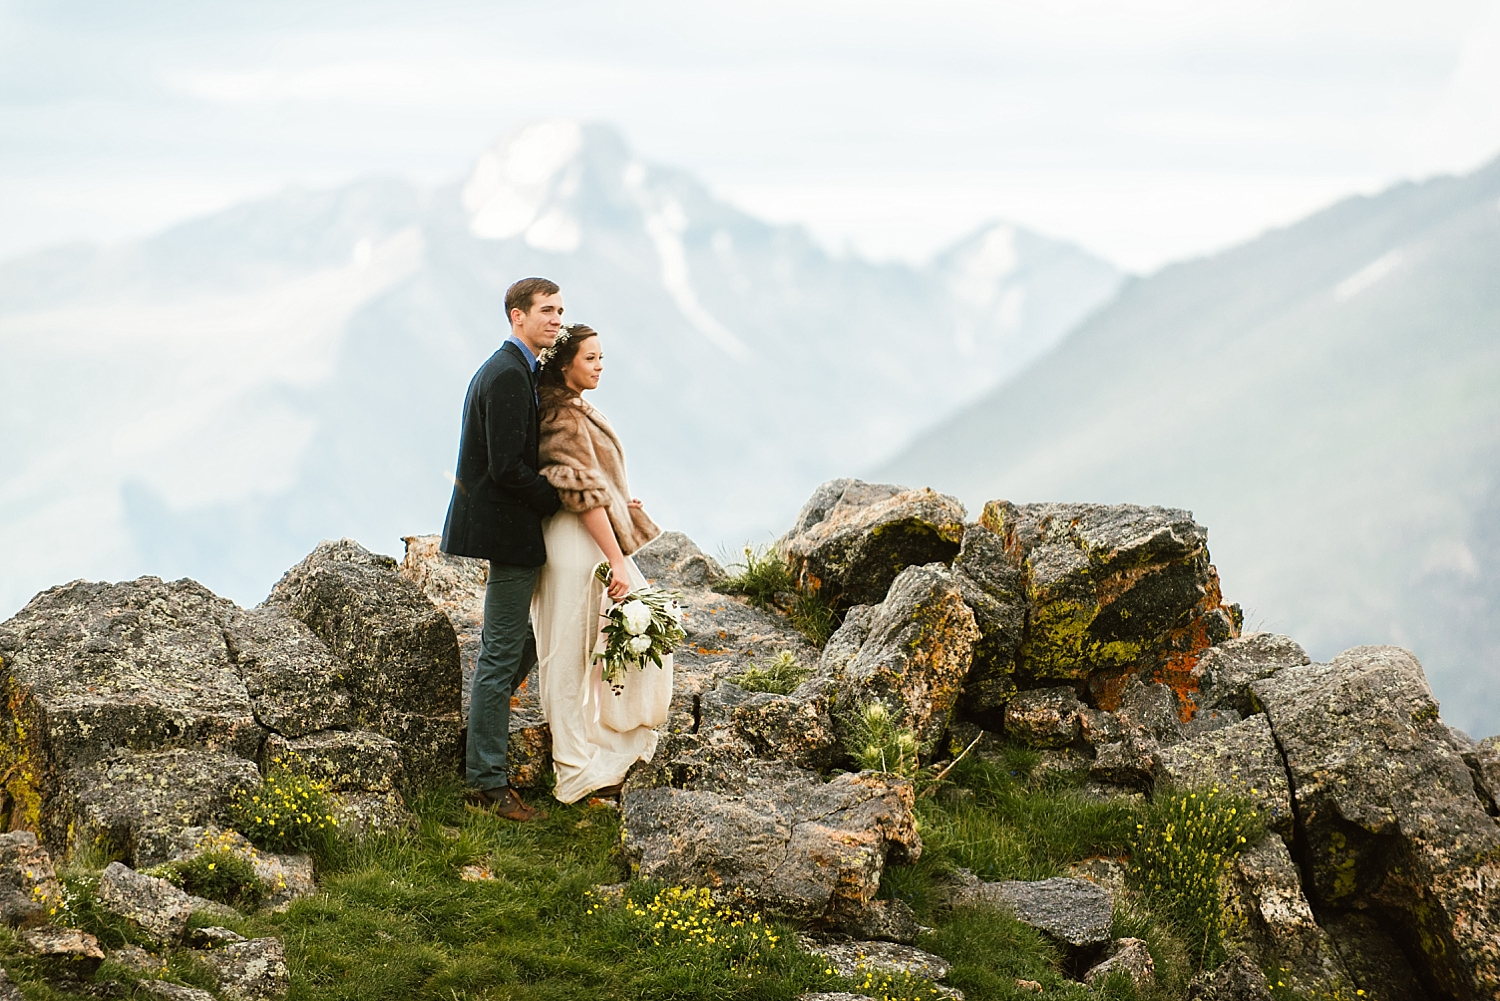 This cliffside wedding in Estes Park, Colorado has to be one of the most gorgeous elopement locations in Rocky Mountain National Park, Colorado! | RMNP elopement location photos by adventure wedding photographer, Maddie Mae.